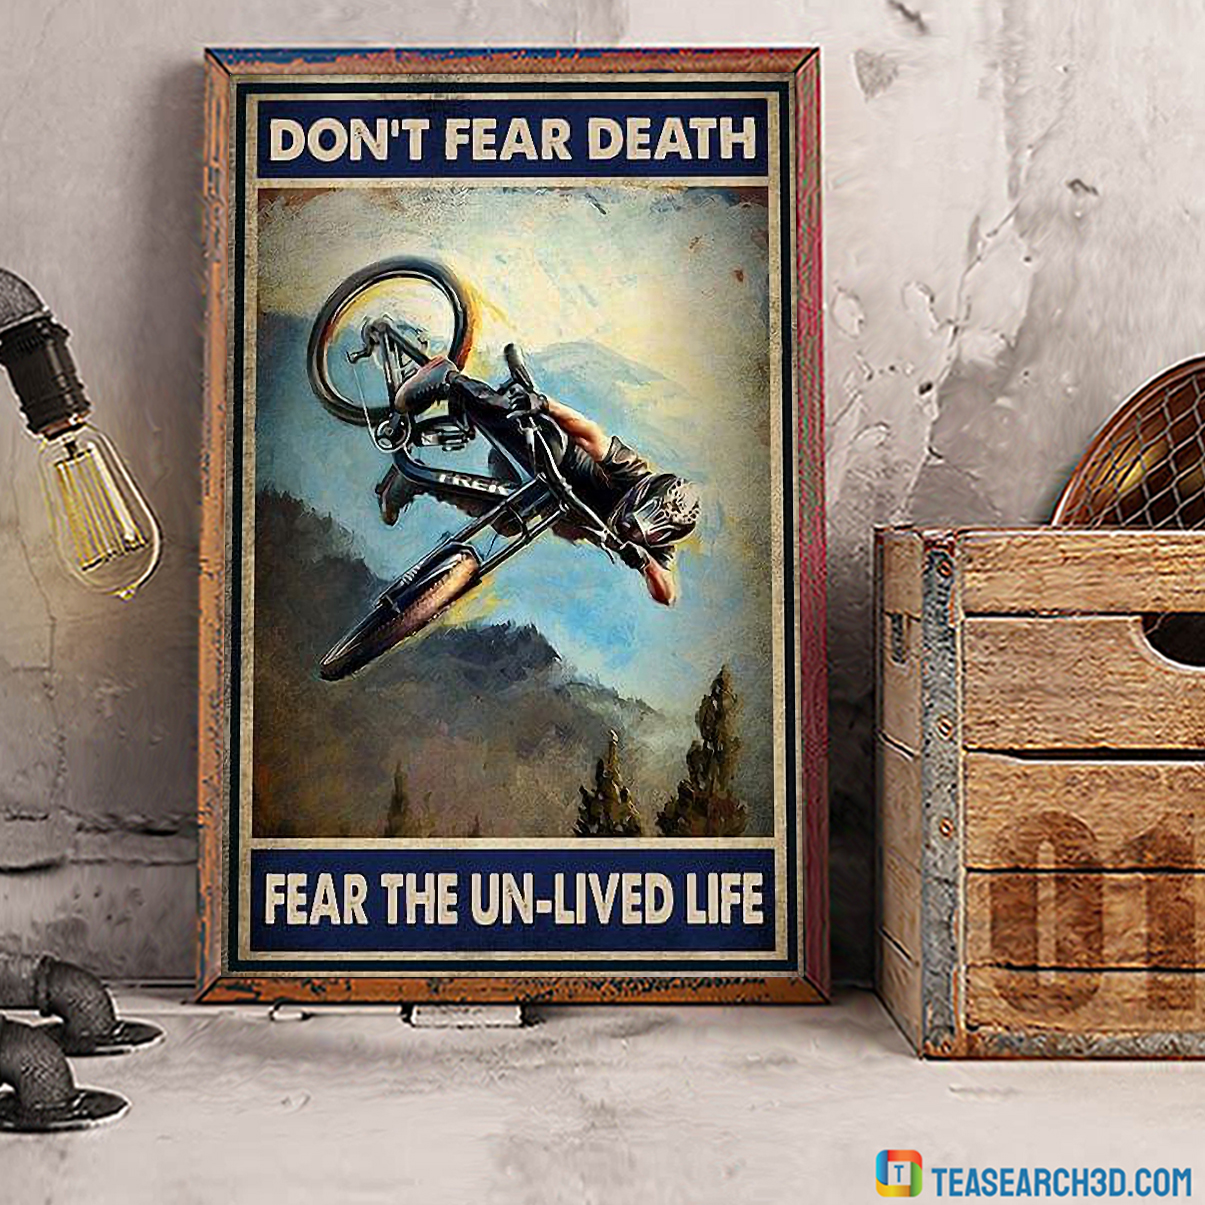 Mountain bike don't fear death fear the un-lived life poster A3